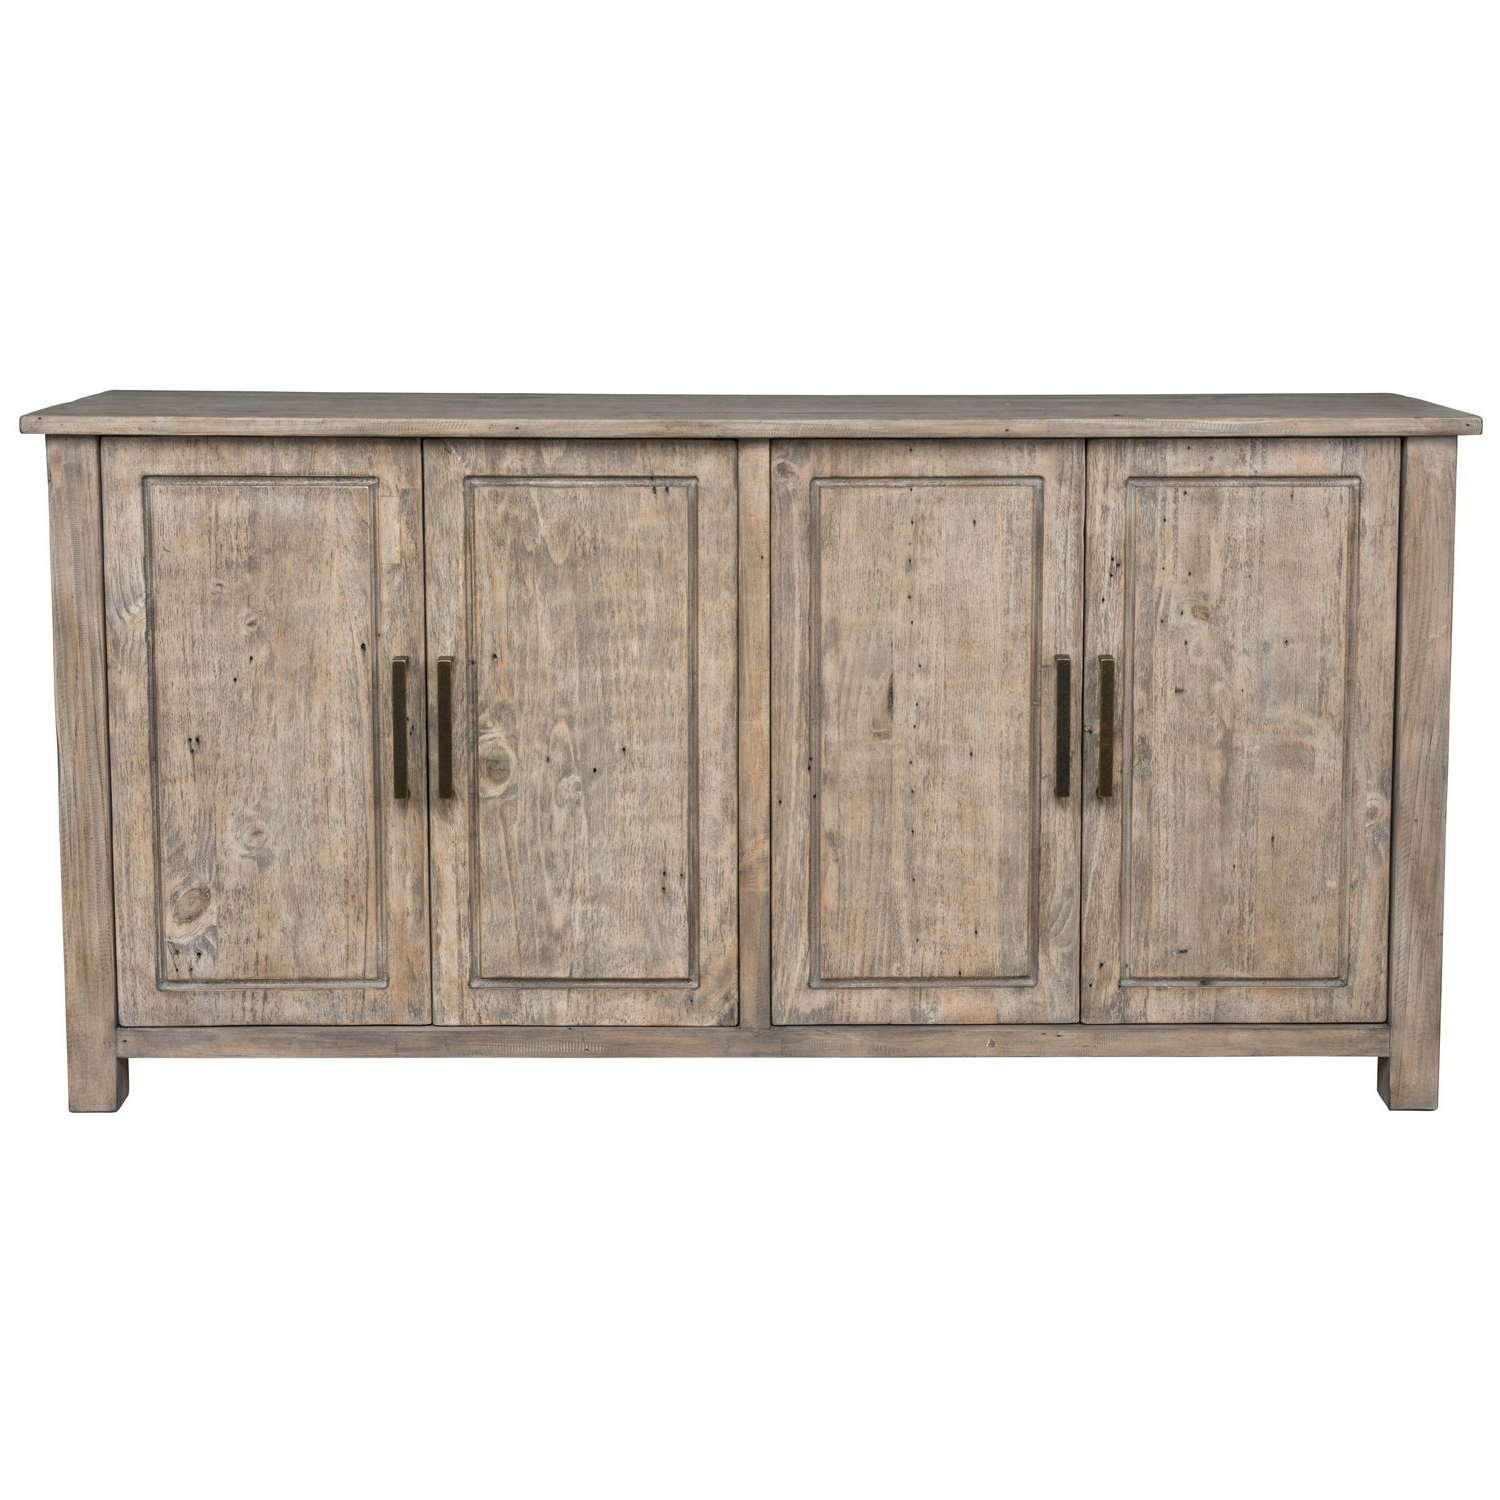 Current Shop Aires Reclaimed Wood 72 Inch Sideboardkosas Home – Free Inside Diamond Circle Sideboards (View 6 of 20)